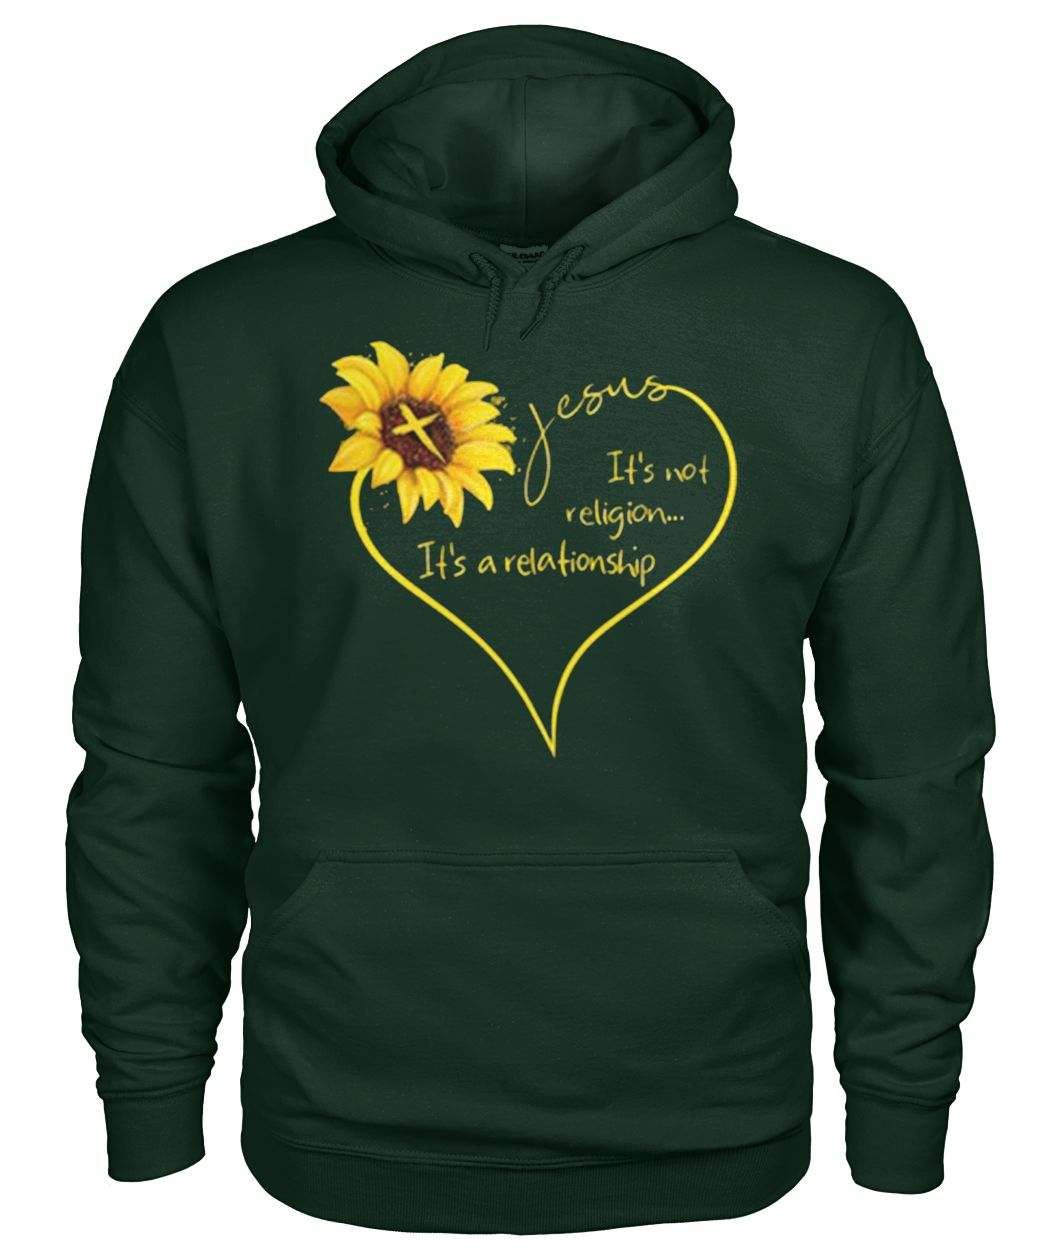 Sunflower Jesus it's not religion it's a relationship gildan hoodie